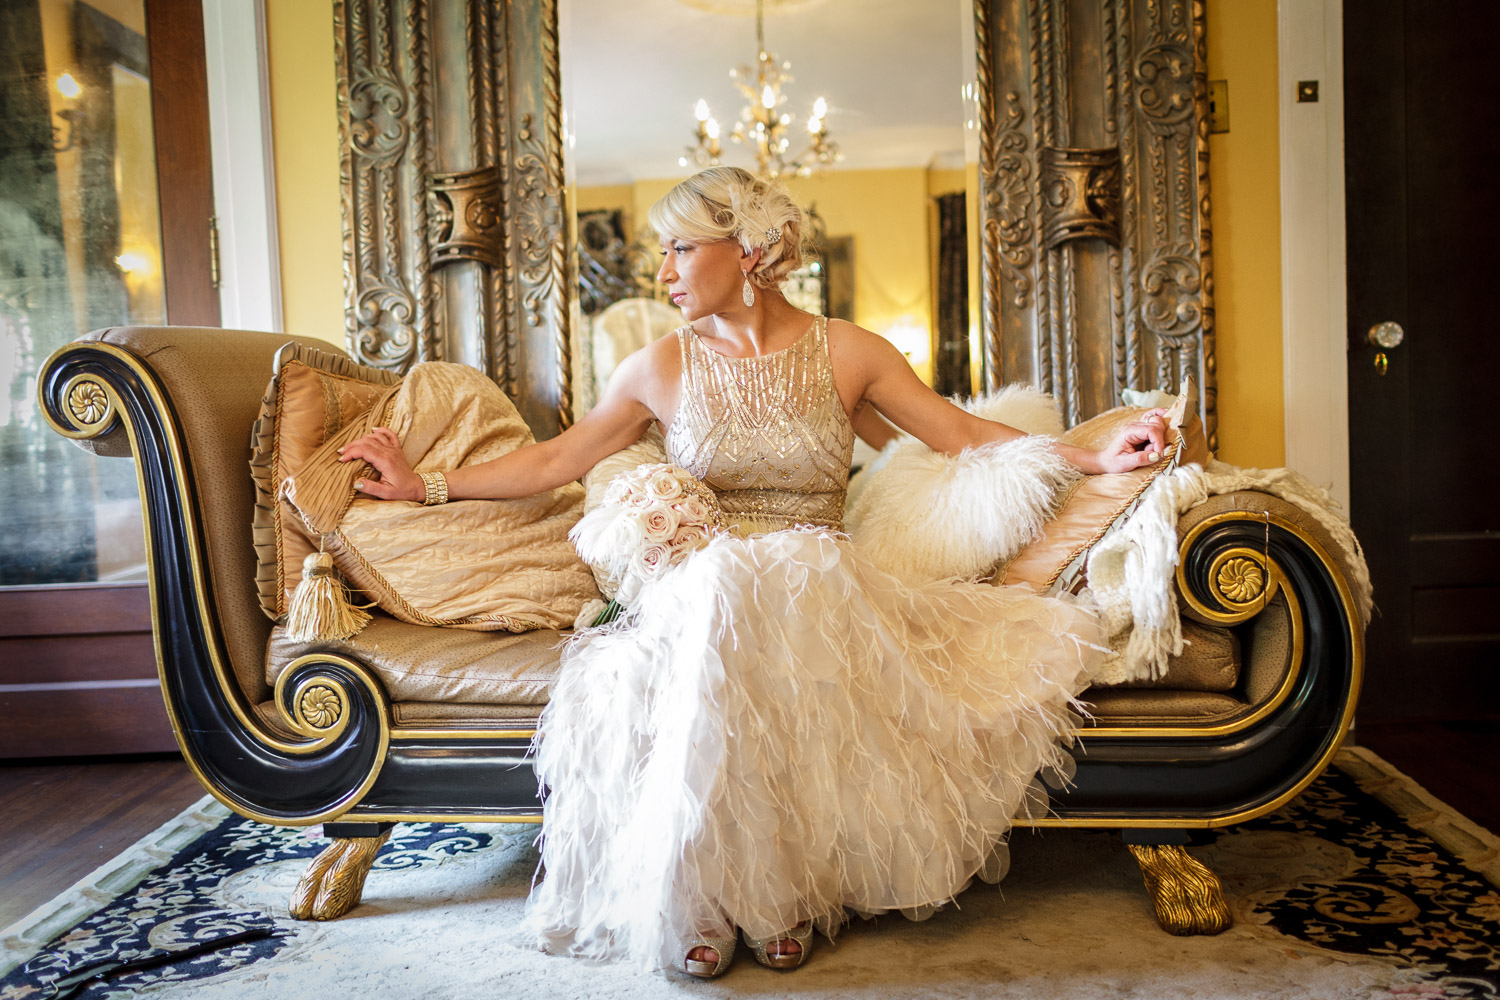 """This is one of those """"I can't believe how great this turned out"""" images for me. Marina, the beautiful bride, chose to wear a Gatsby inspired wedding dress adorned with gold and feather like lace reminiscent of the roaring 20's. The bridal suite in the magnificent  Henry Hall Wilson House  had this beautiful vintage couch along with a gigantic gold trimmed mirror behind it, just begging to be used in a photo. We nabbed this quick bridal portrait just seconds before she walked outside to meet her eagerly awaiting groom Eric."""